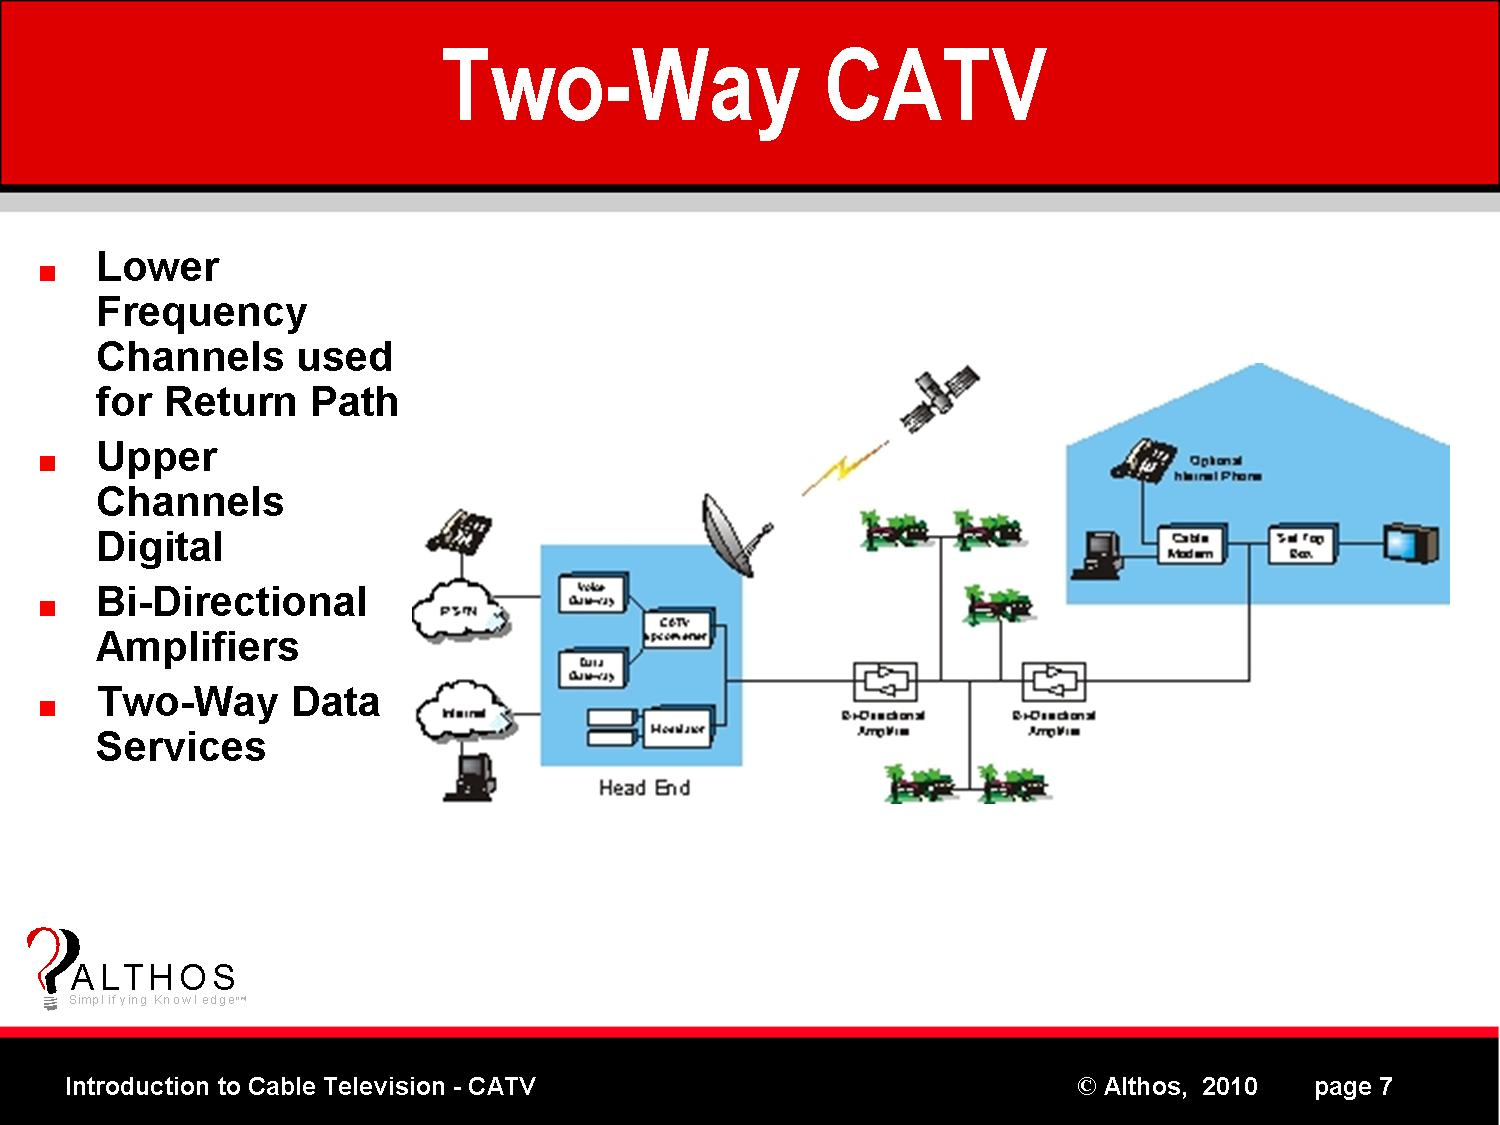 Introduction to CATV | Two-Way Cable TV System